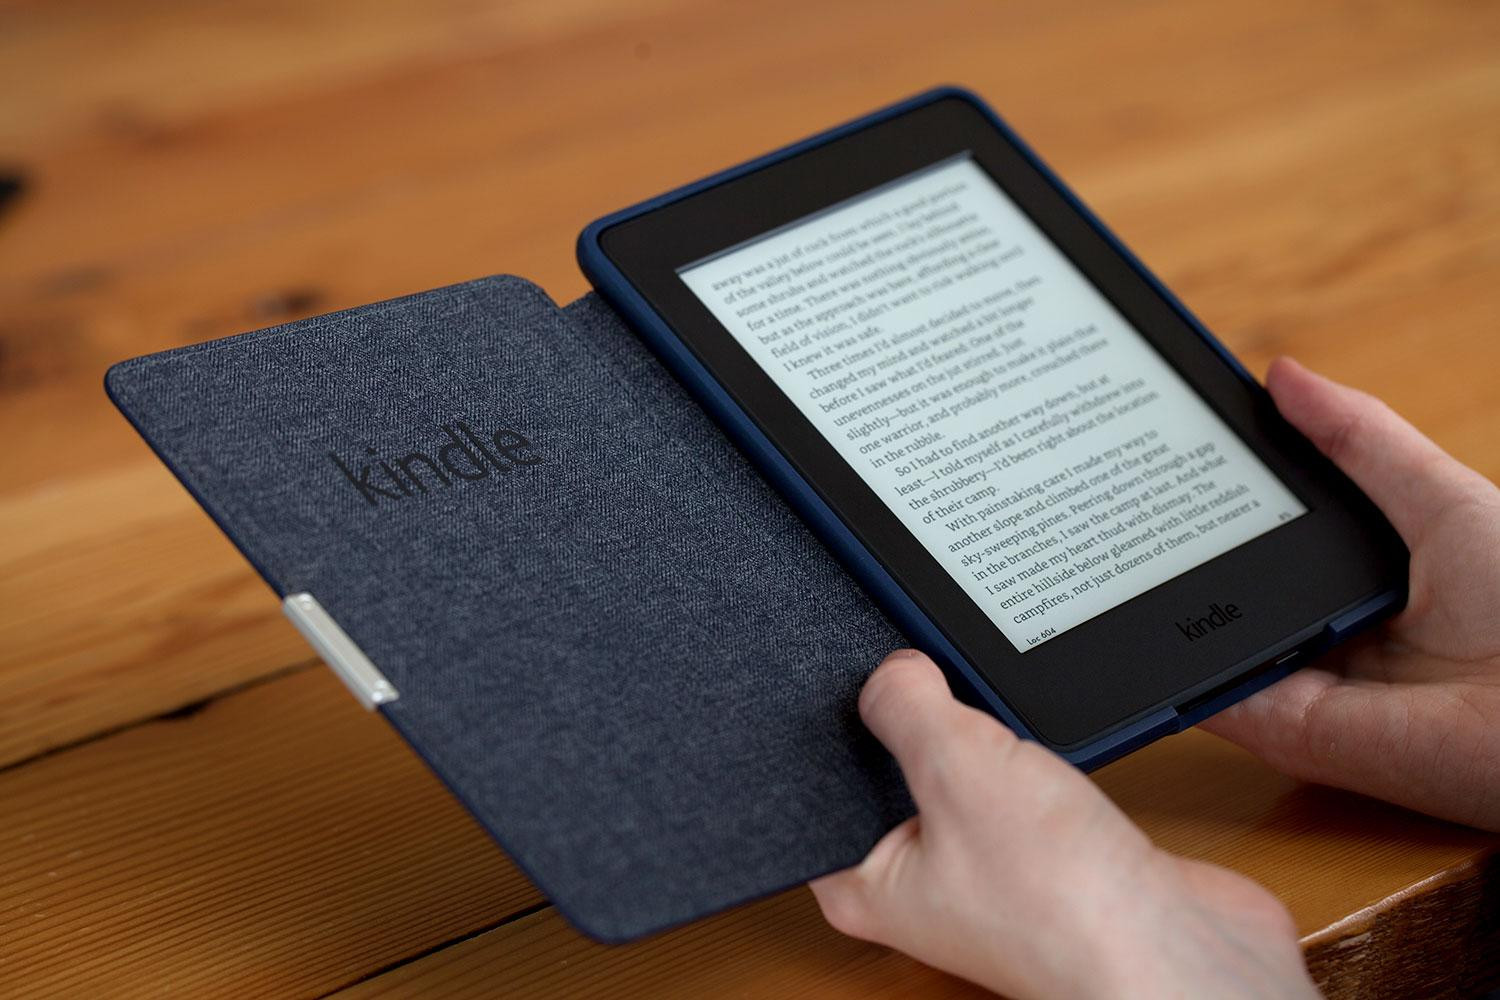 kindle paperwhite downloading books